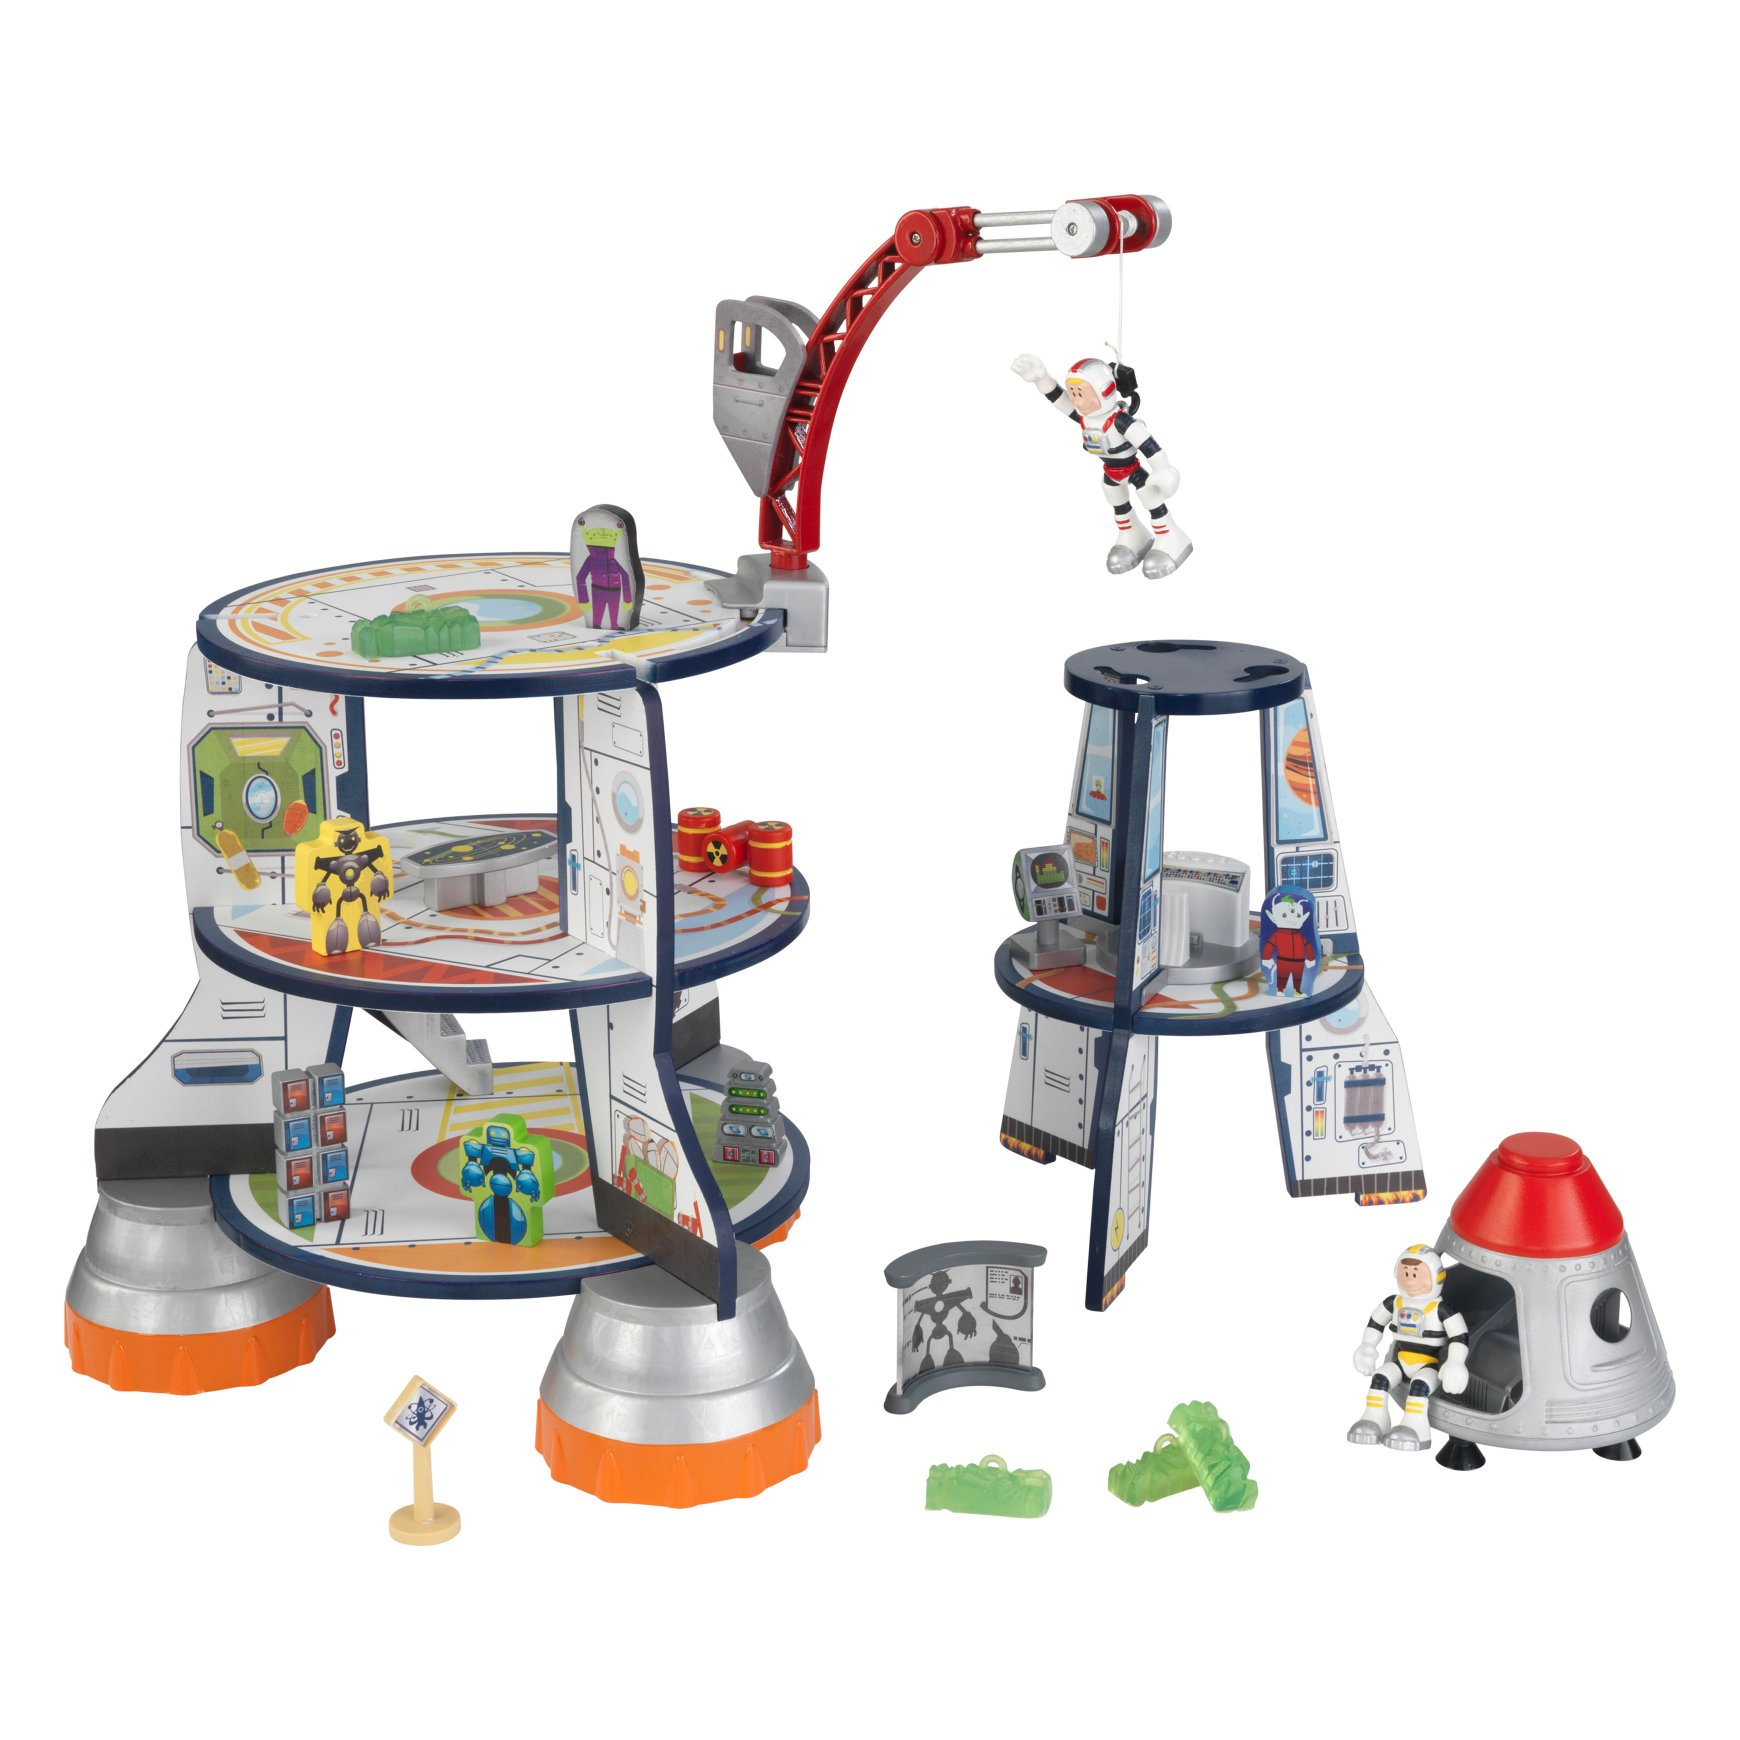 rocket ship wooden play set for children in s a